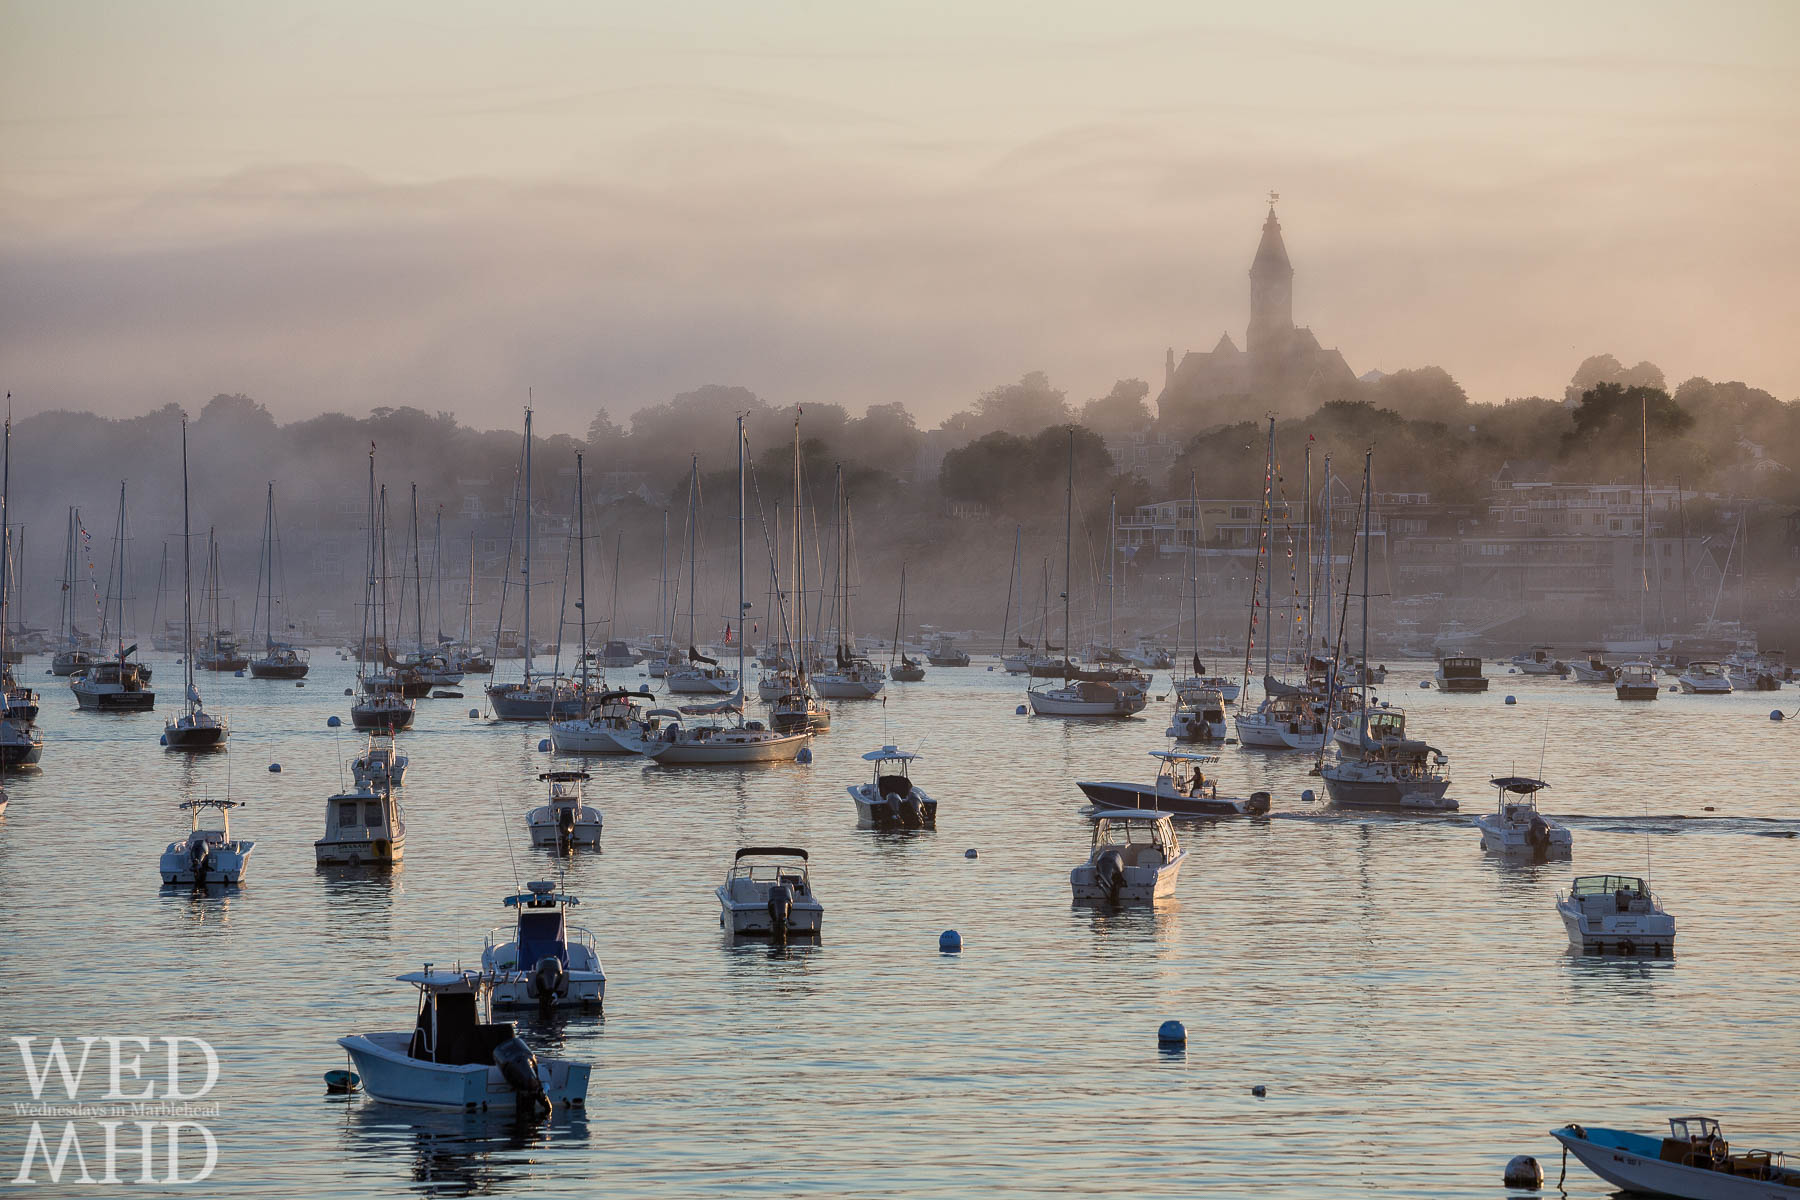 Summer bring foggy nights to Marblehead harbor with sunset coloring the fog in a warm pastel glow